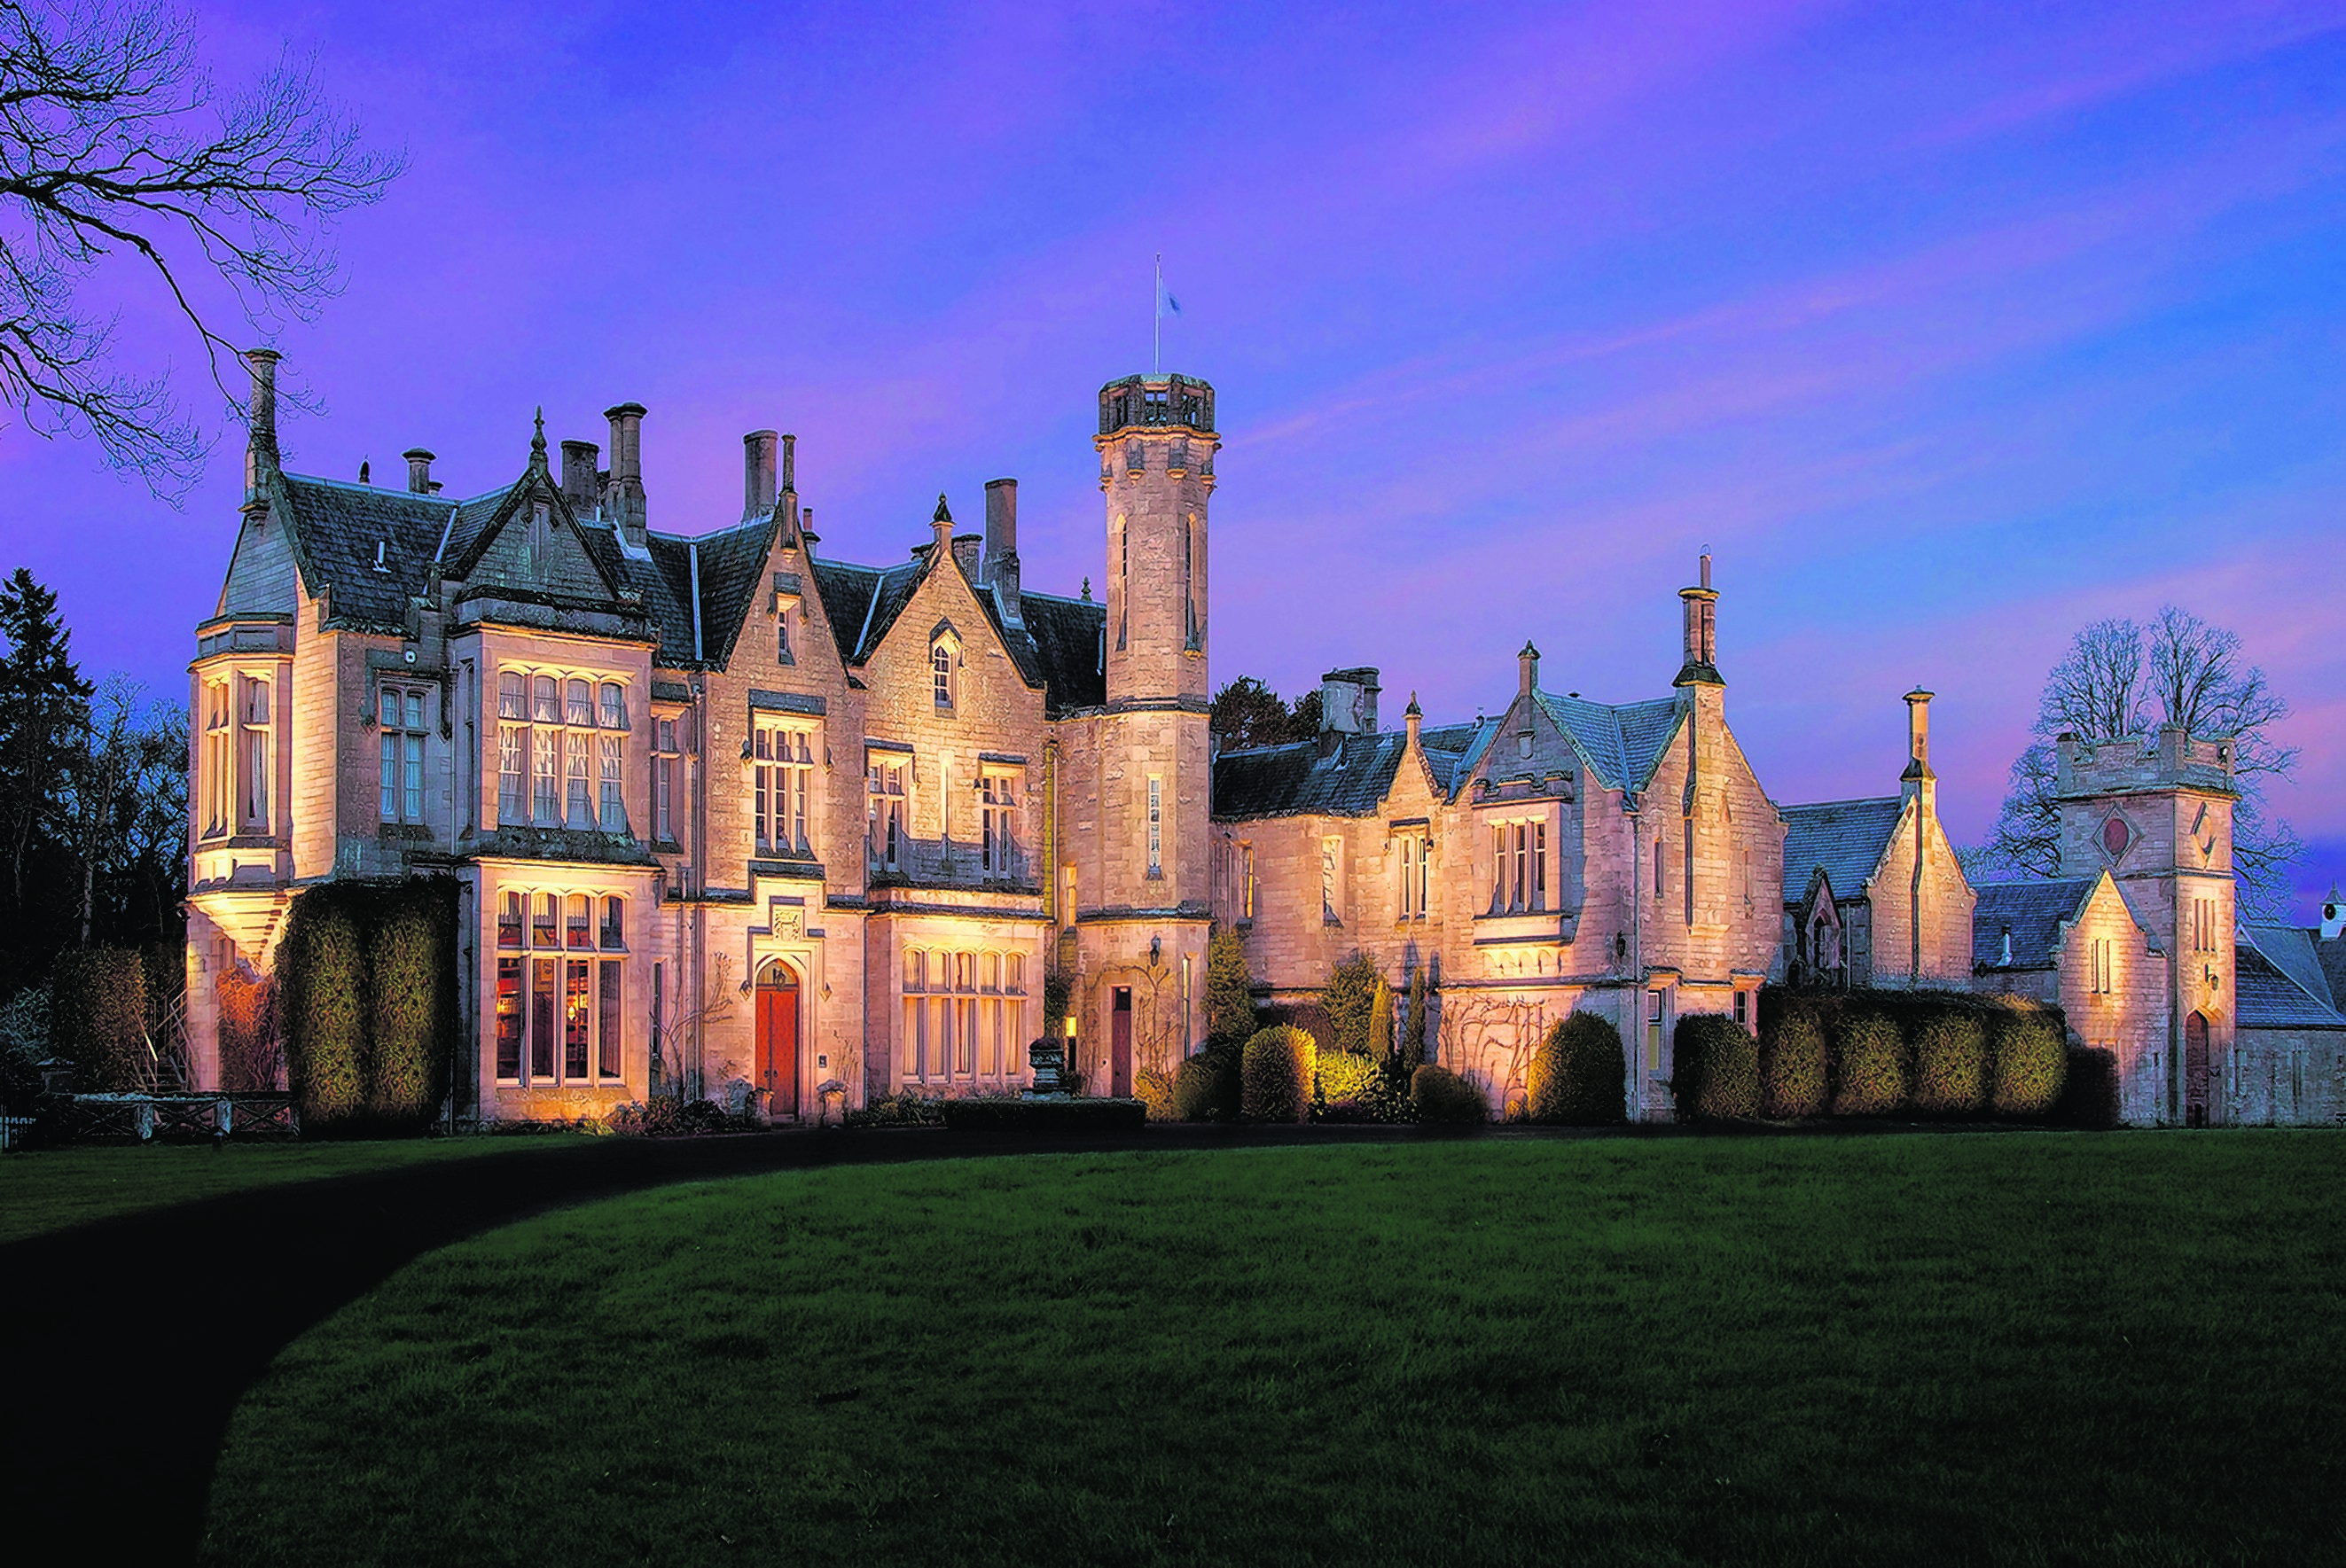 The Roxburghe Hotel and Golf Course  is steeped in history – legend has it Bonnie Prince Charlie spent the night here